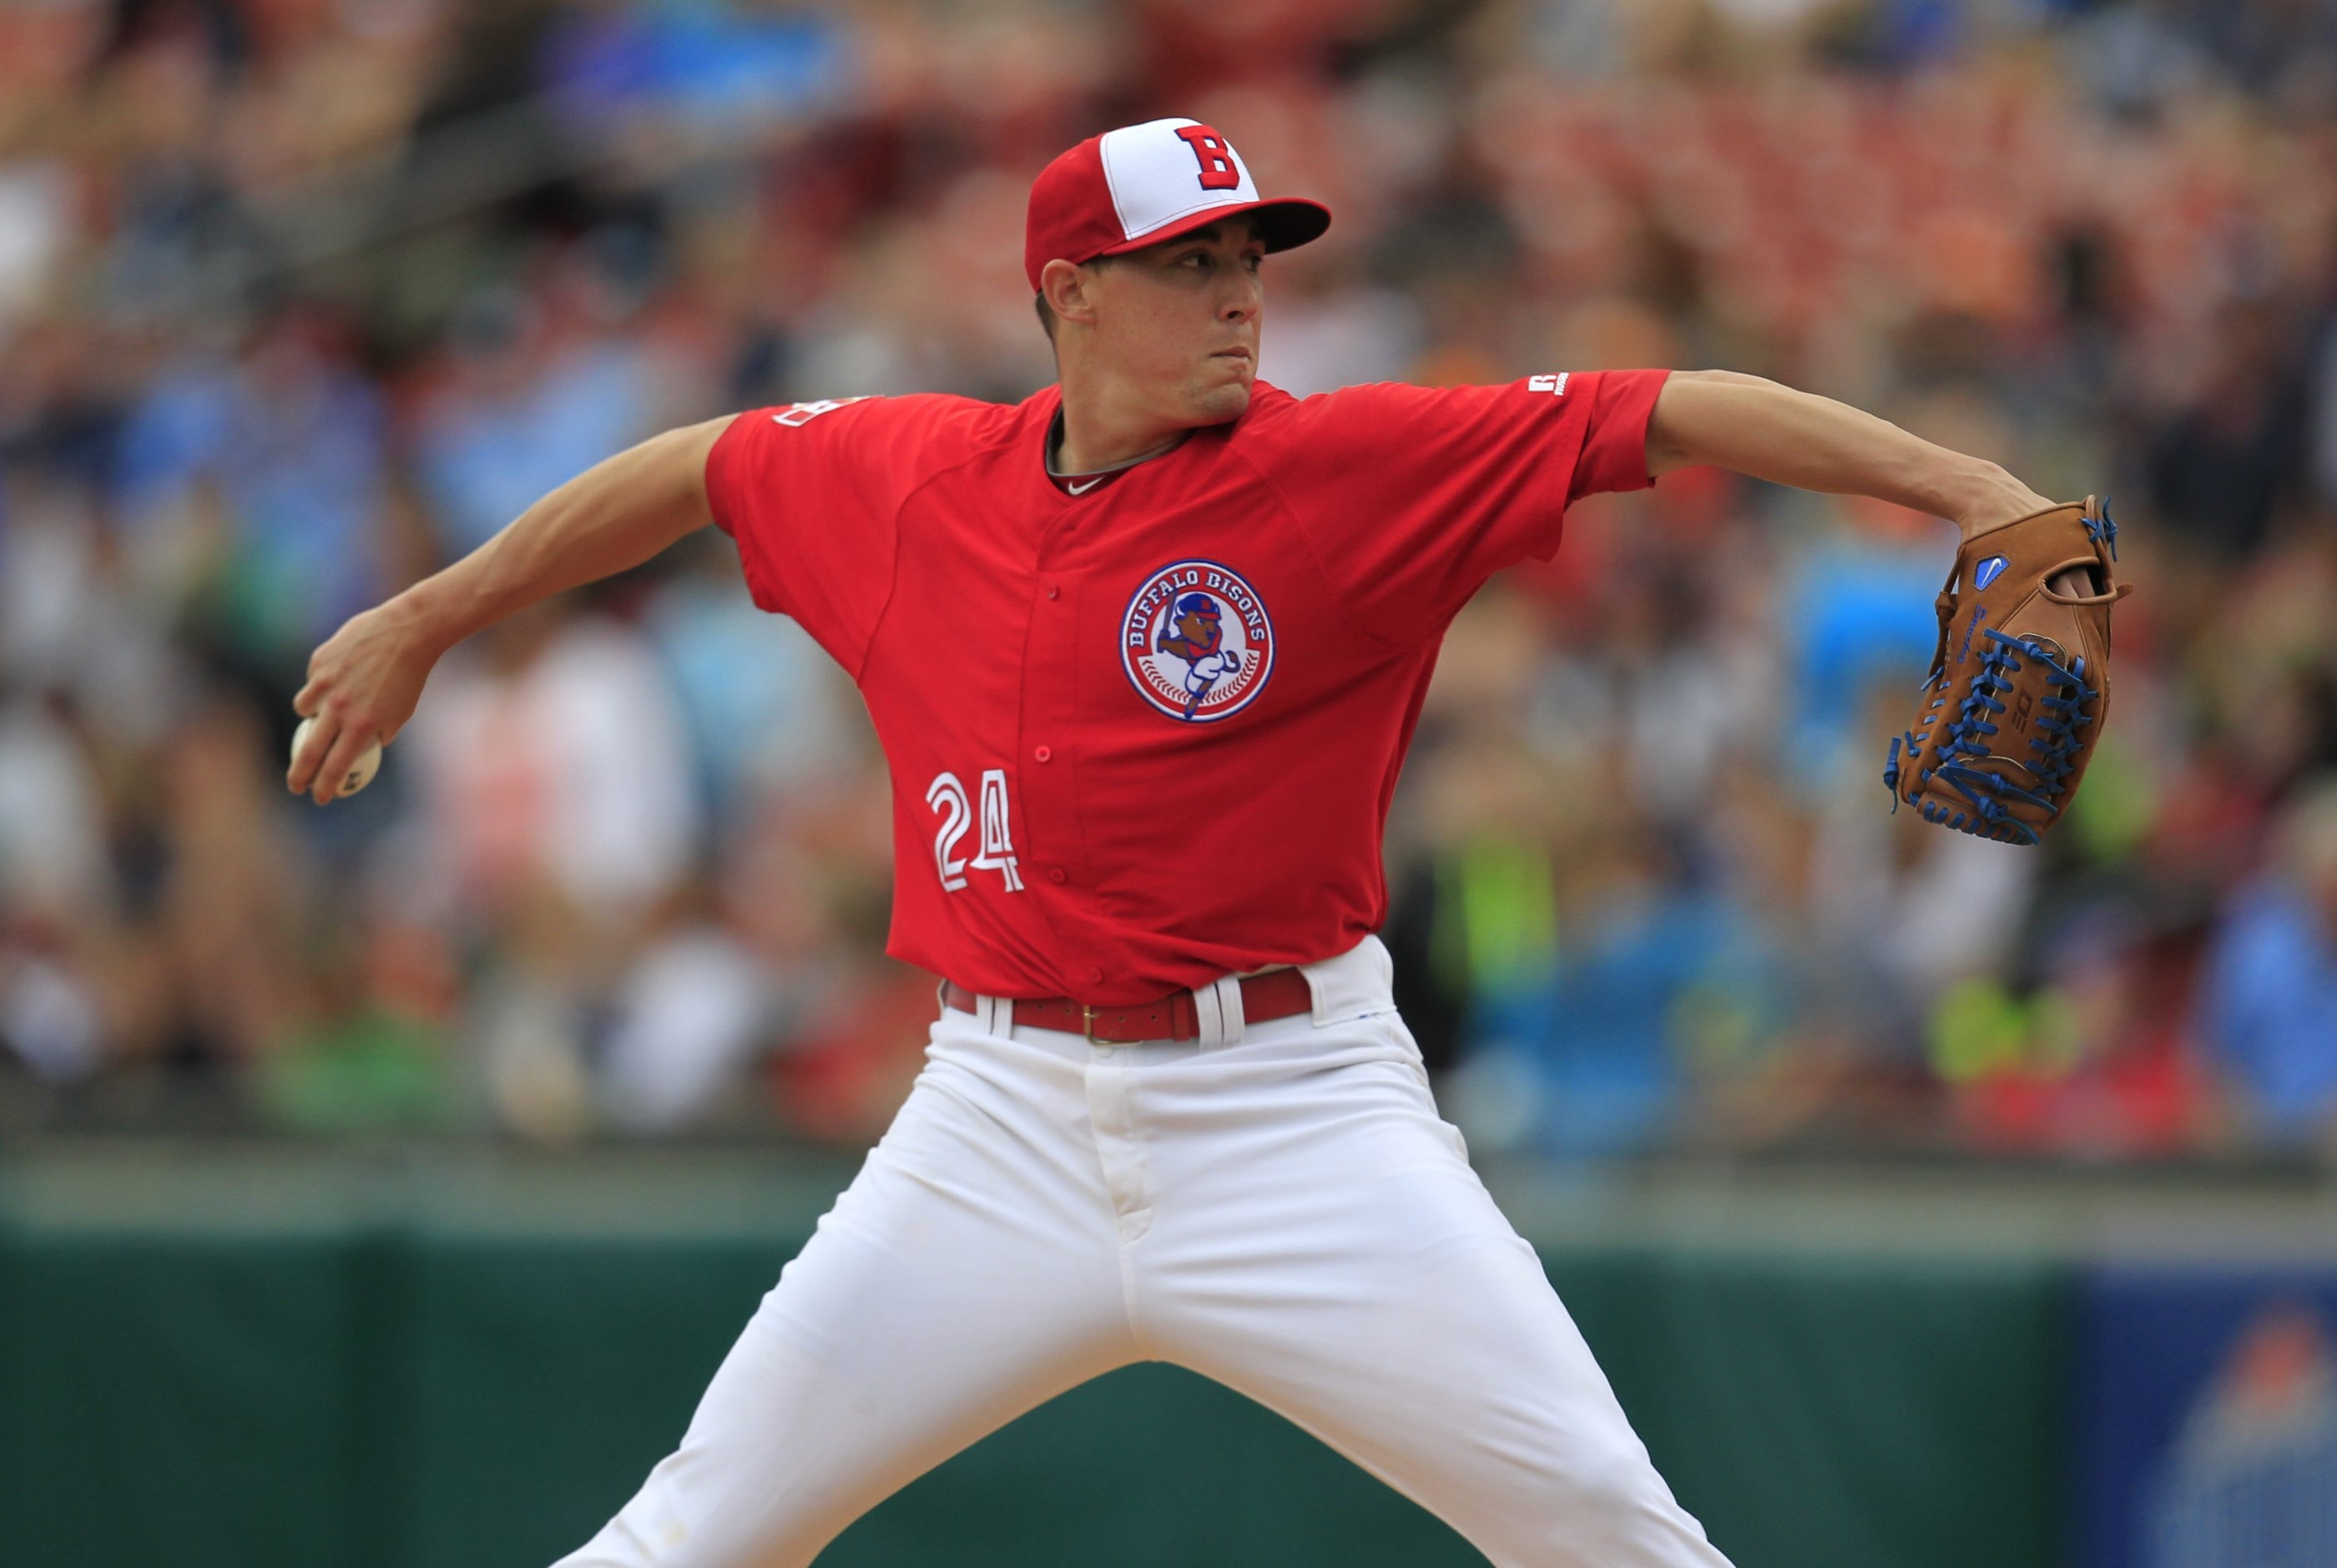 The Bisons' Aaron Sanchez, the top pitching prospect in the Blue Jays organization, got a no-decision on Friday night against Rochester.